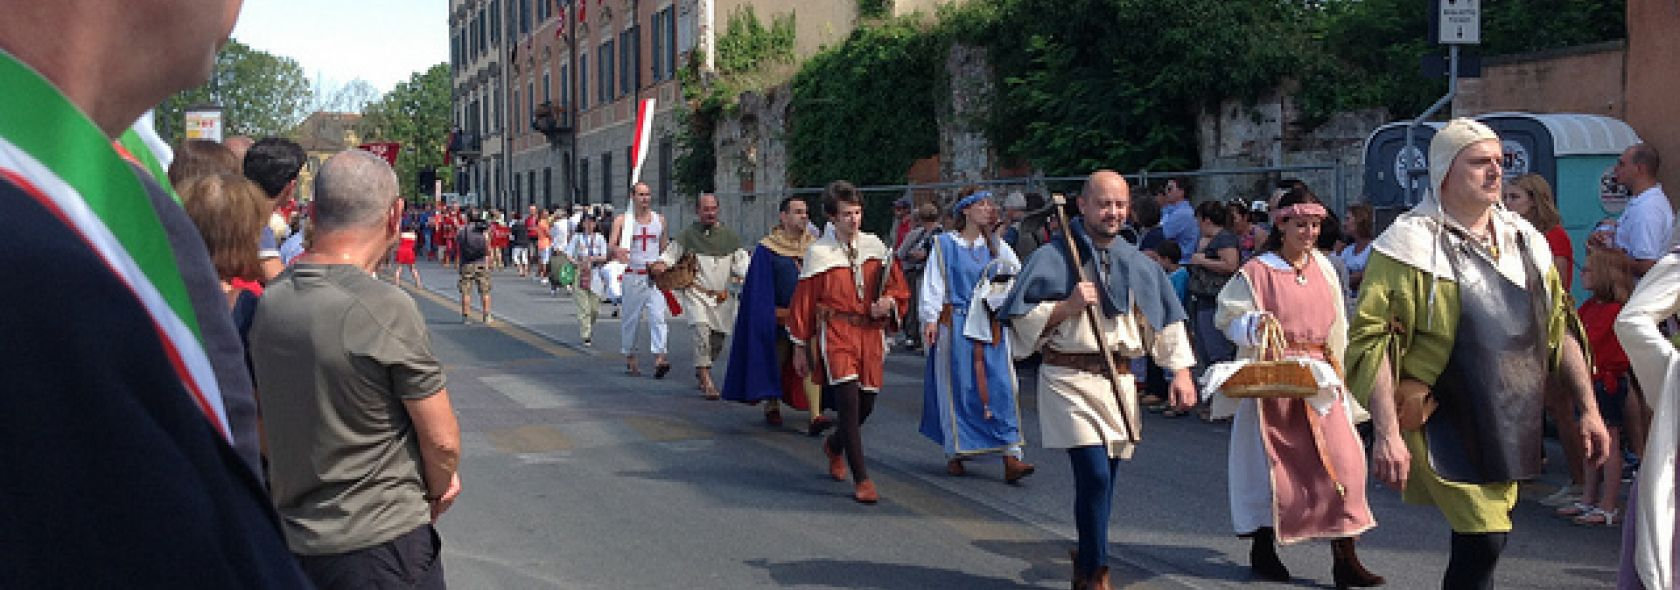 The Medieval Pageant of Genoa - Pisa 2013 - ©genovacittadigitale